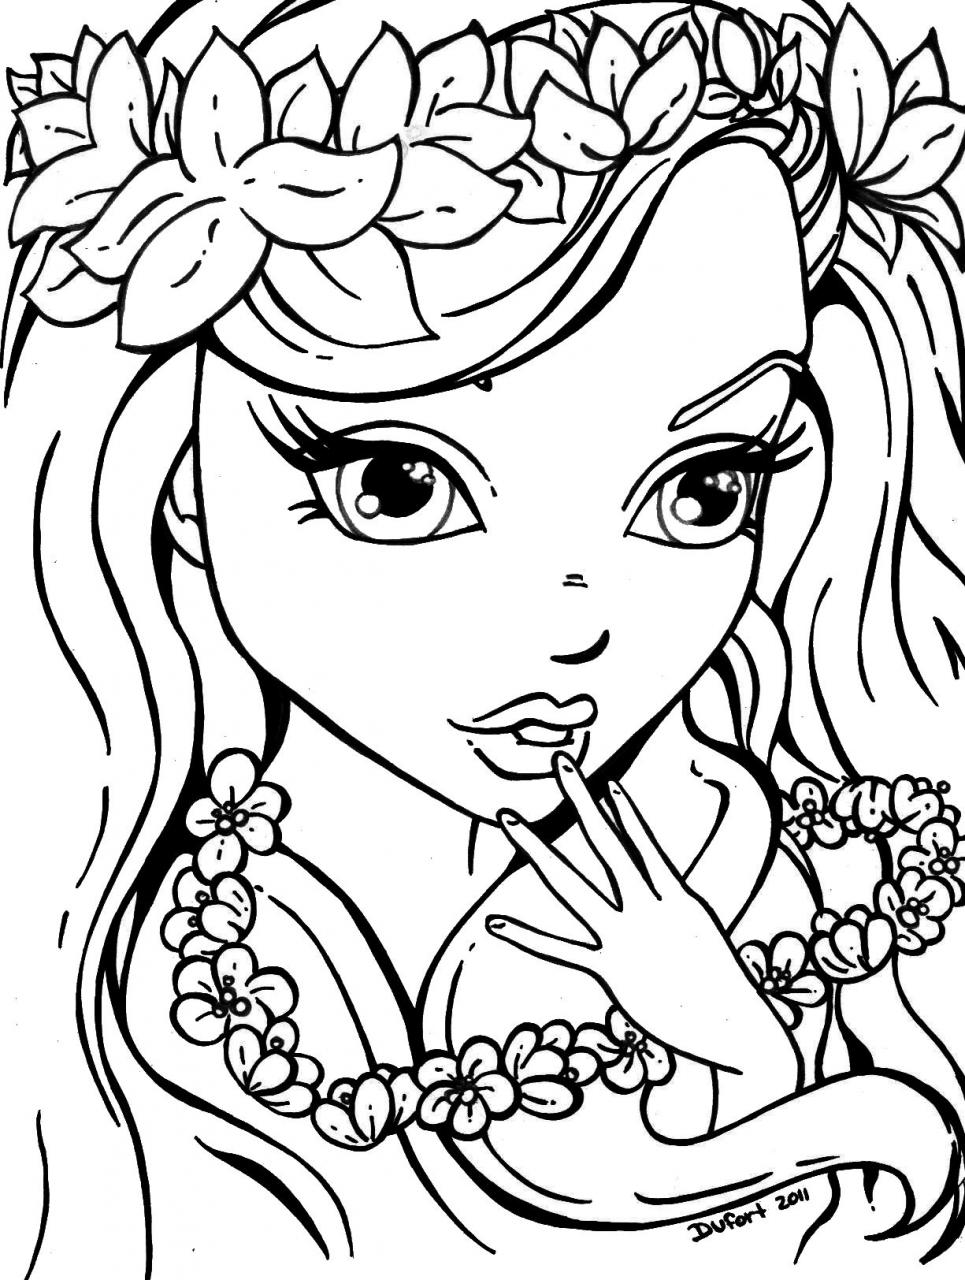 coloring kids pictures coloring pages for girls best coloring pages for kids coloring pictures kids